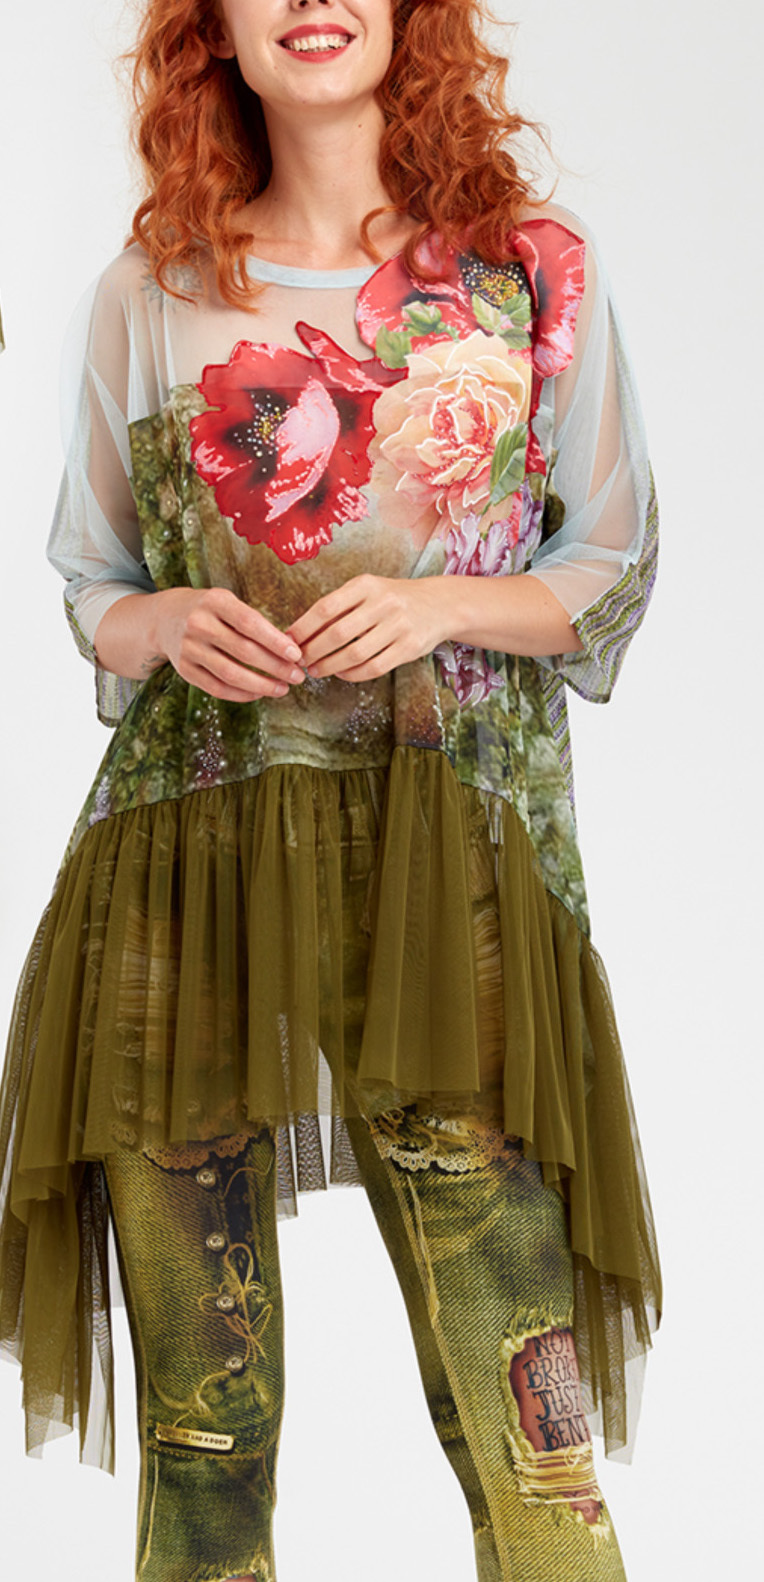 IPNG: In Paradiso Cherry Carnation 3D Illusion Ruffled Long Tunic